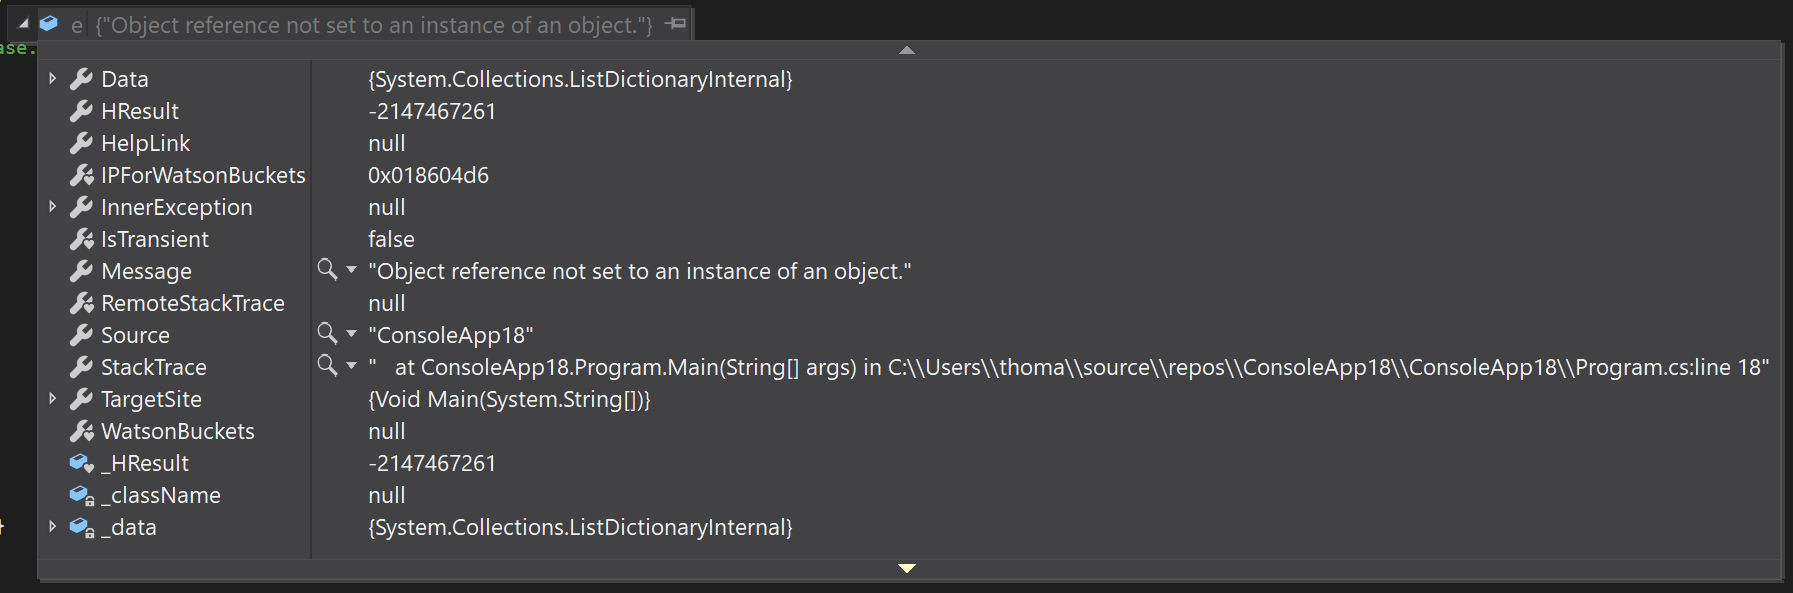 NullReferenceException in Visual Studio 2